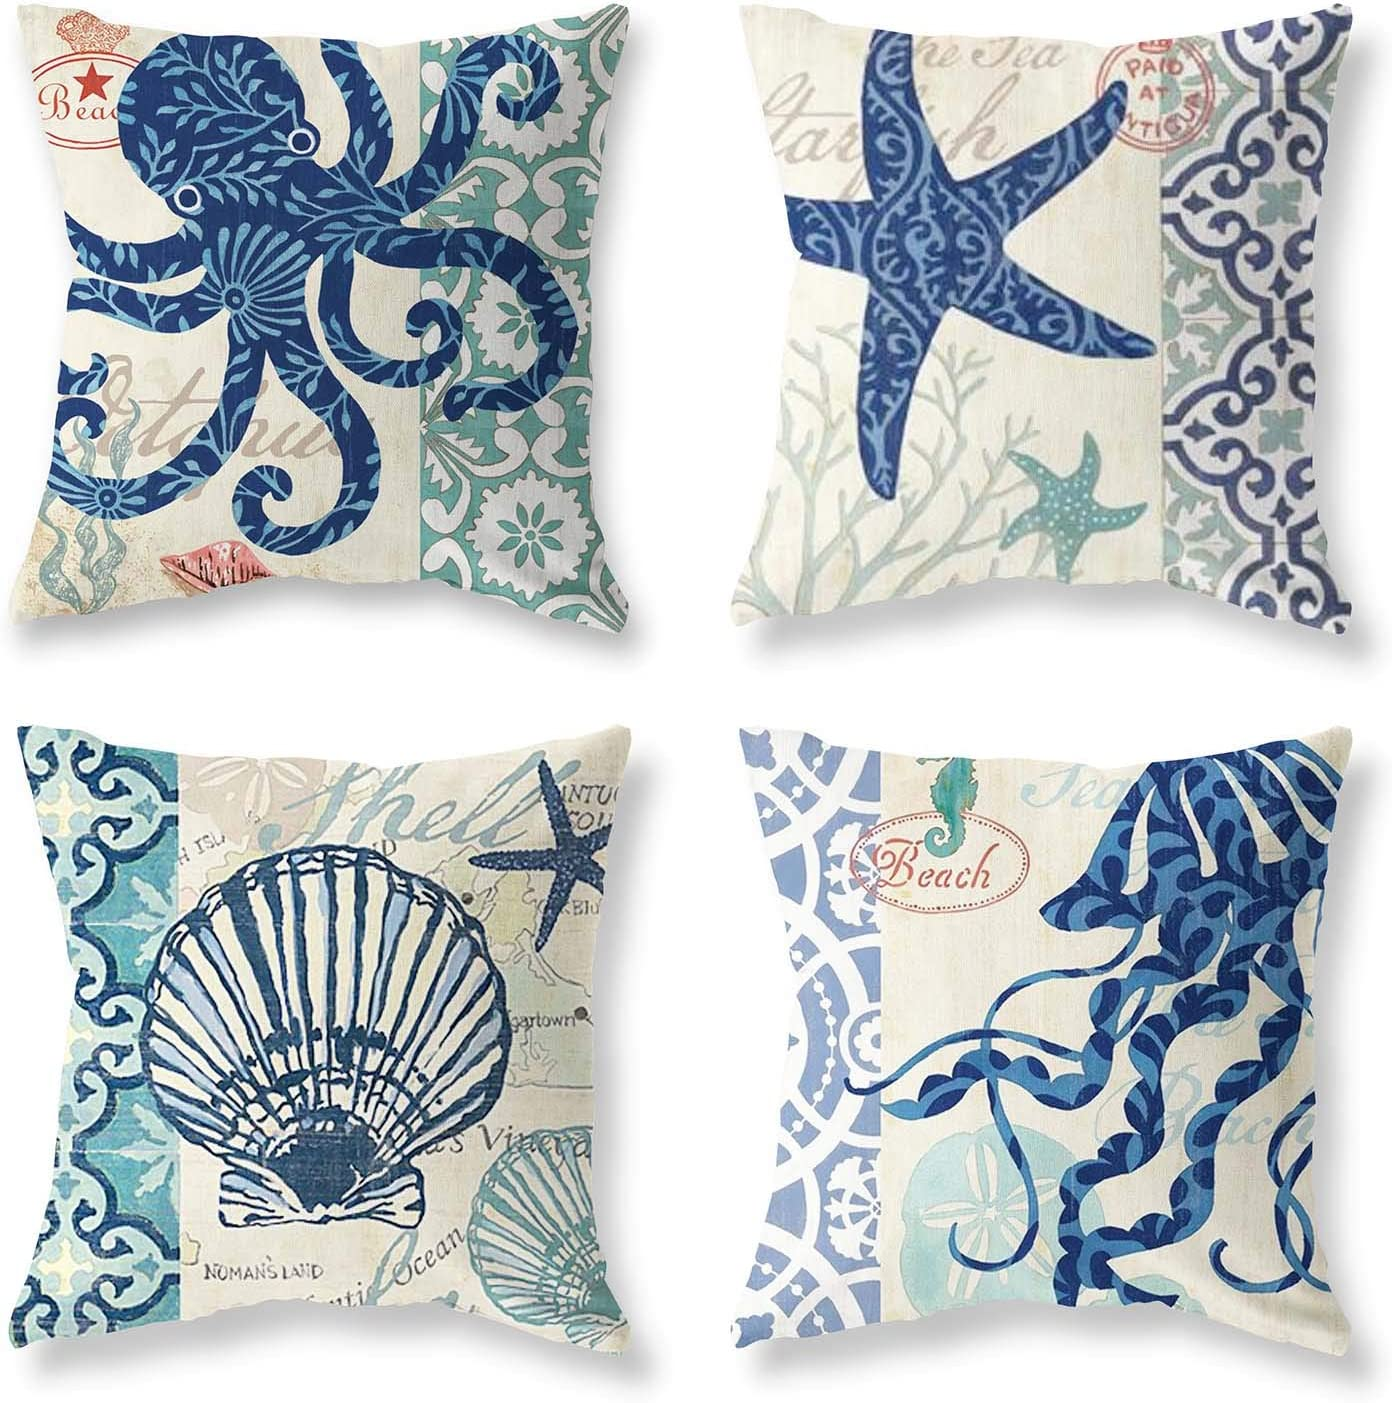 Pack of 4 Decorative Throw Pillow Covers 18x18 Inch Ocean Theme Holiday Octopus Starfish Shell Squid Travel Cool Square Pillow Case Coastal Cushion Cover Home Decor Sofa Car Bedroom Pillows Covers